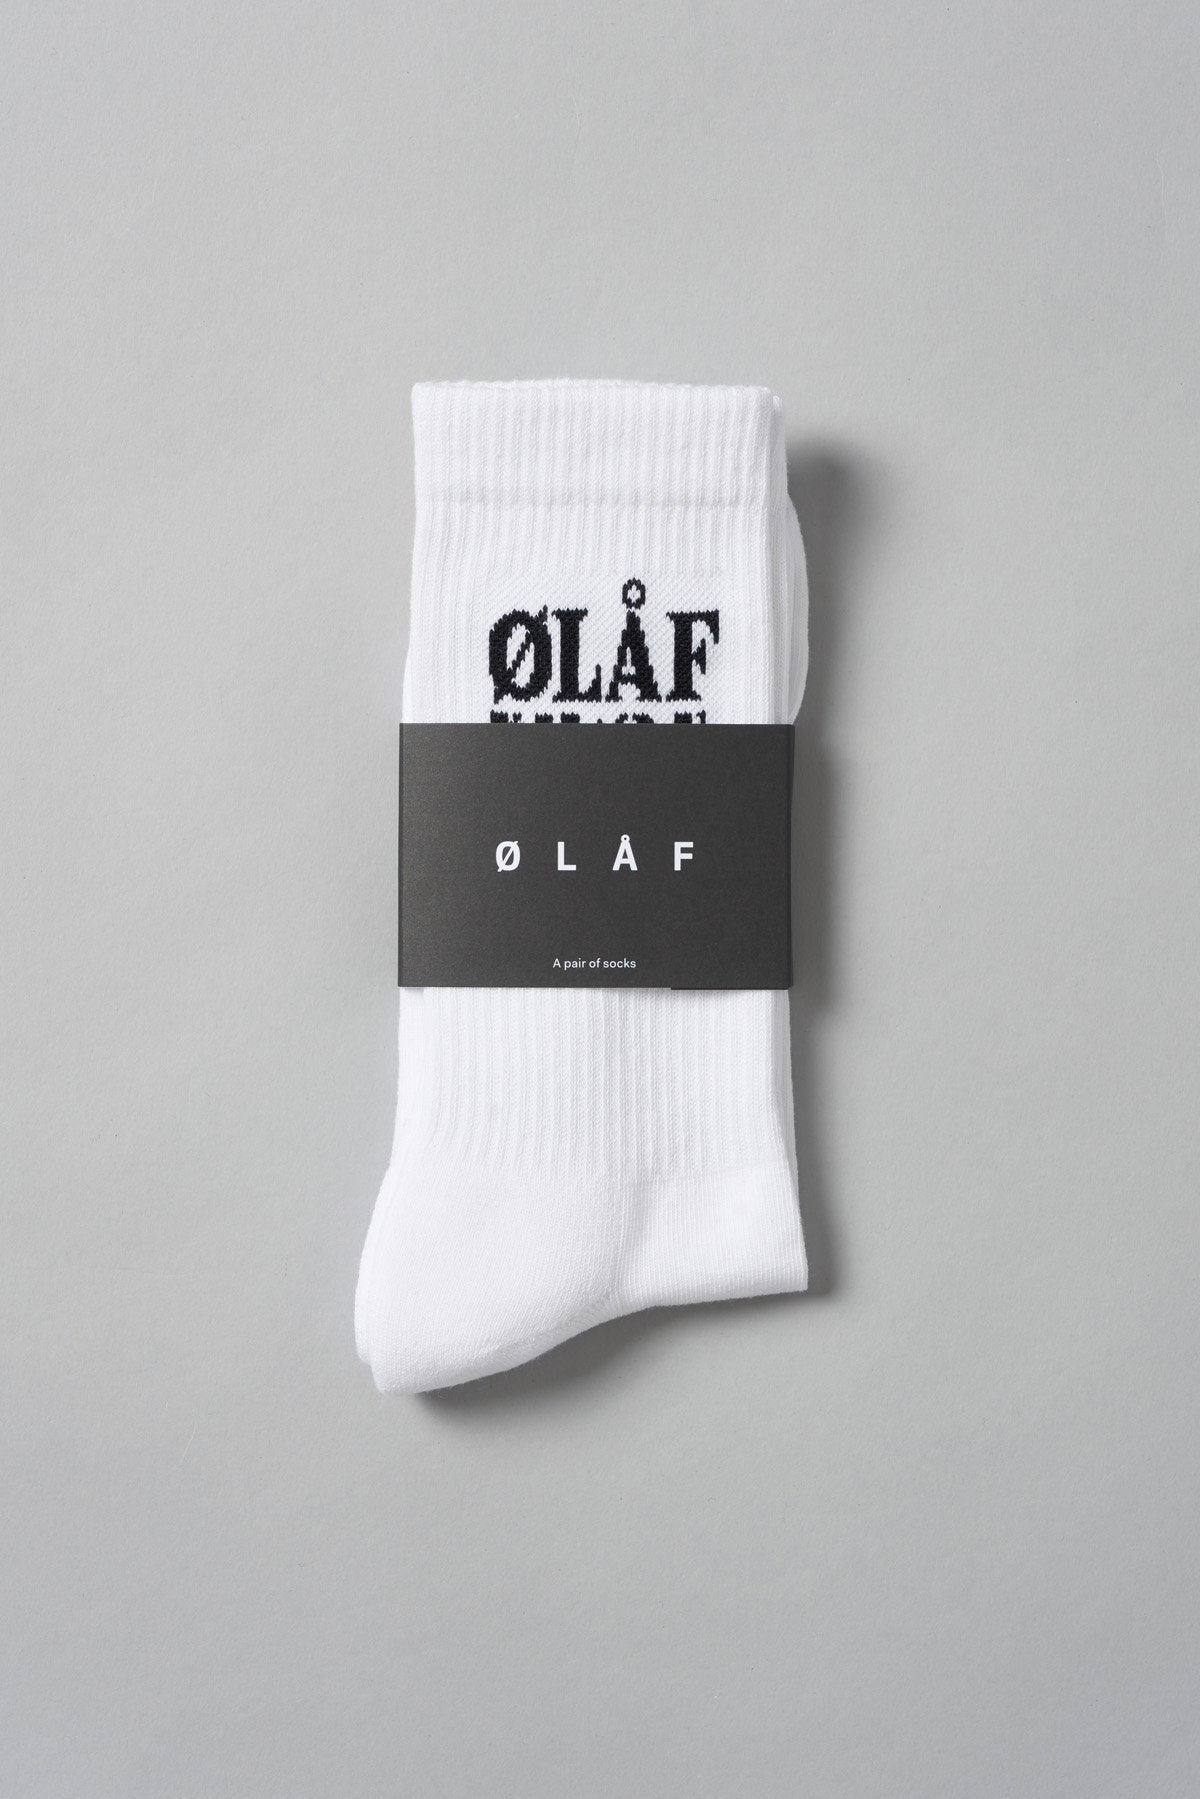 ØLÅF Triple Socks White, 75% Portuguese cotton, 23% polyamide, 2% elastane, Logo on ankle, One size fits all, Made in Portugal